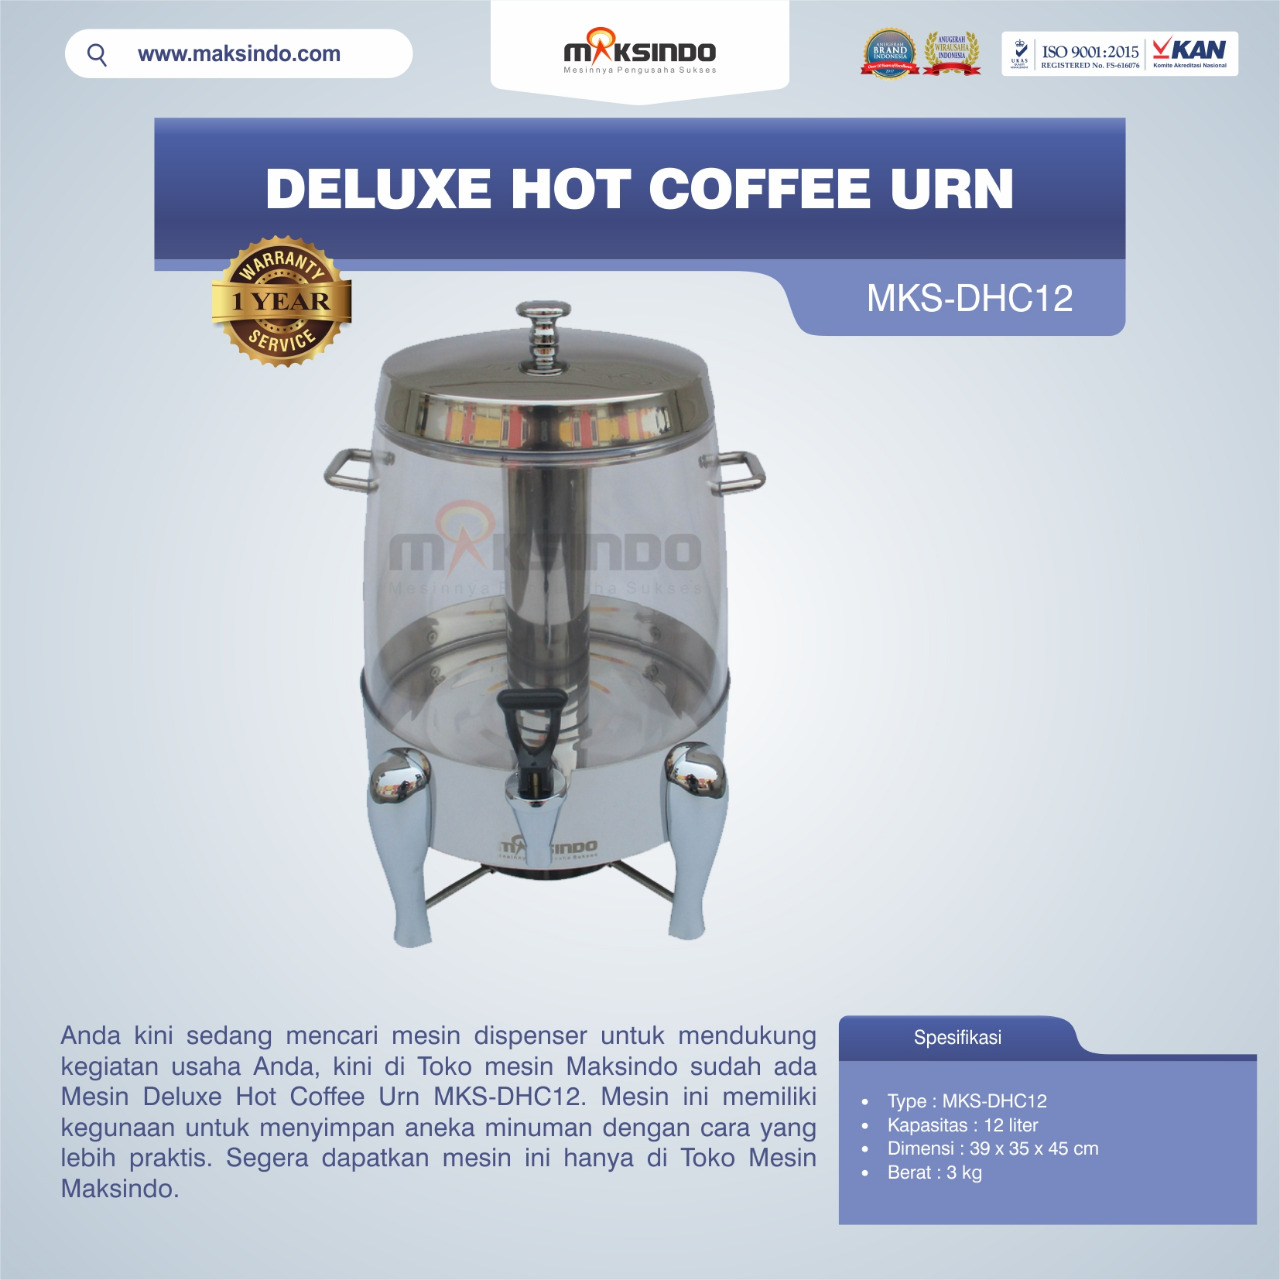 Deluxe Hot Coffee Urn MKS-DHC12